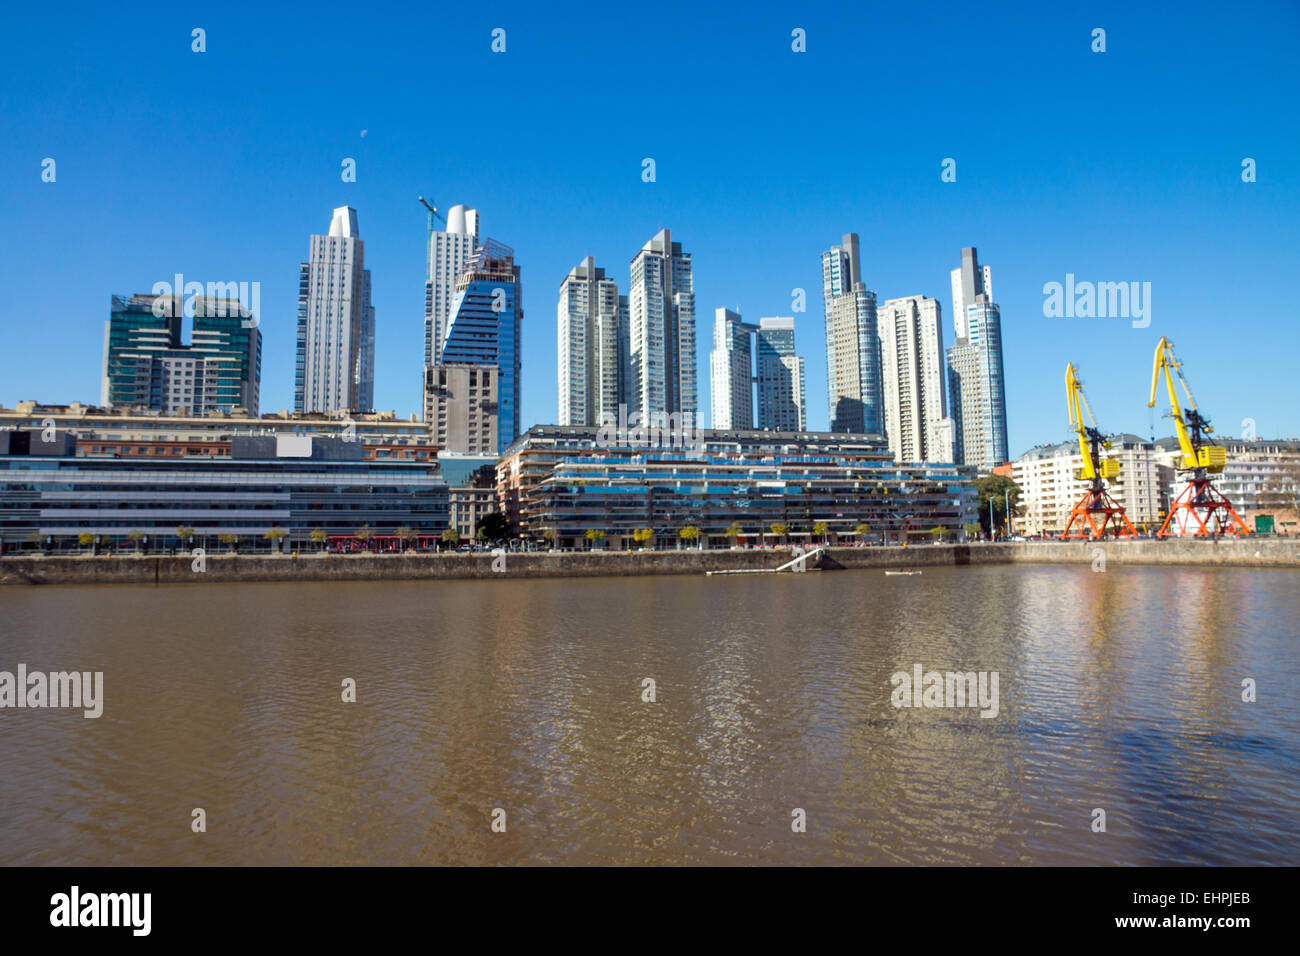 Buildings in Puerto Madero, Buenos Aires - Stock Image